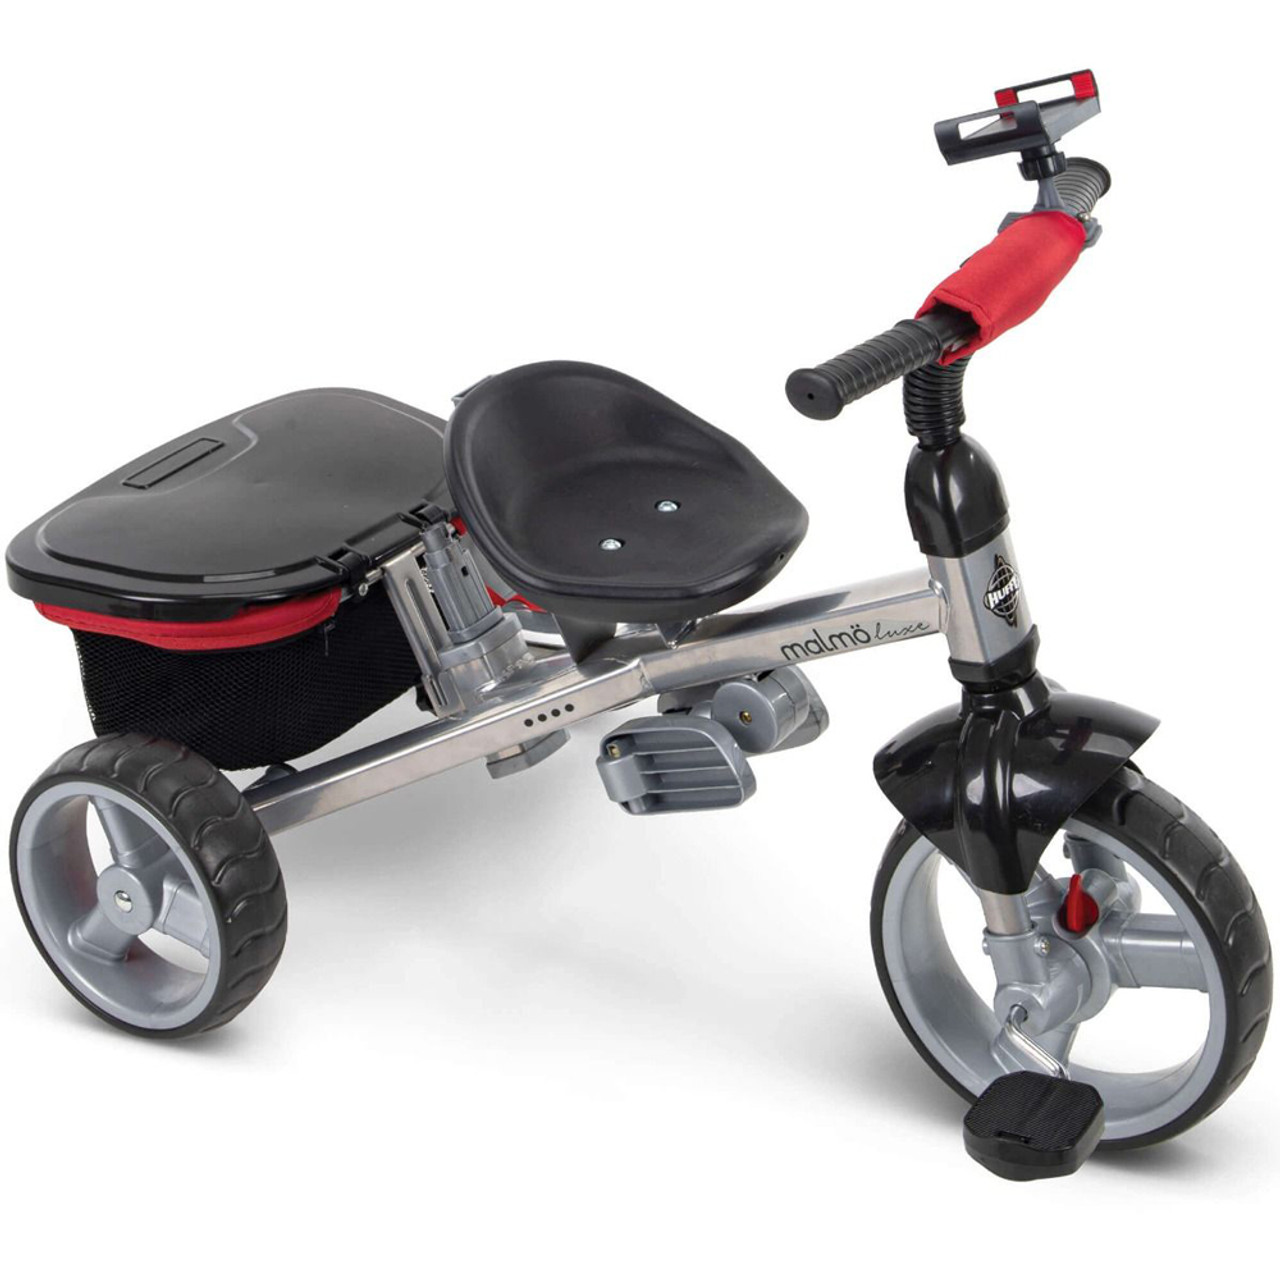 Huffy Malmo Luxe 4-in-1 Canopy Tricycle and Stroller w/ Push Handles for Kids - 29030